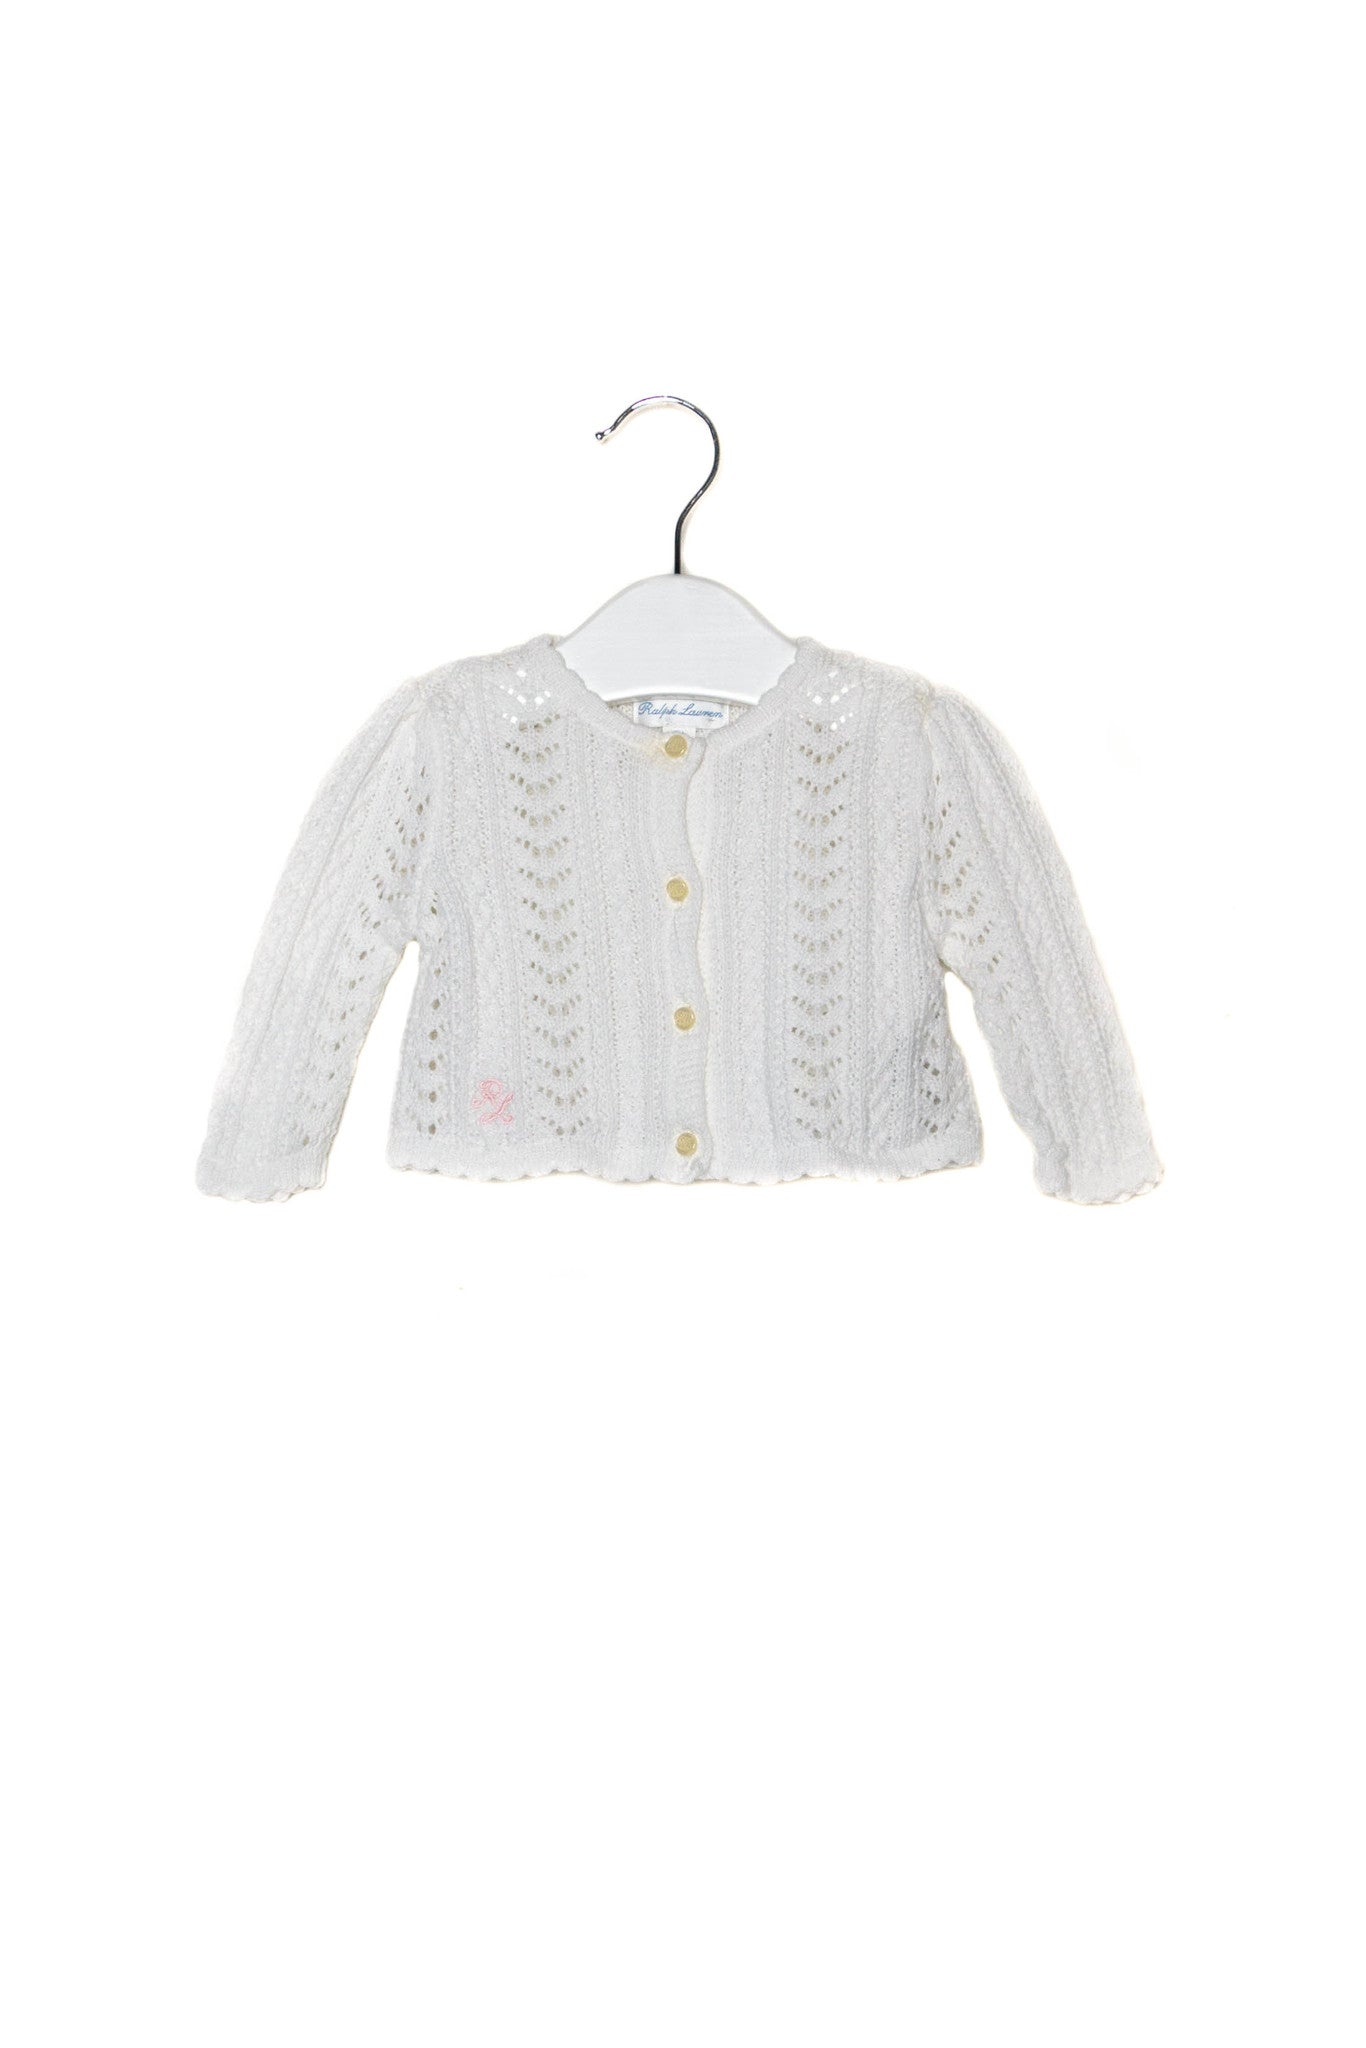 10002271 Ralph Lauren Baby~Cardigan 3M at Retykle